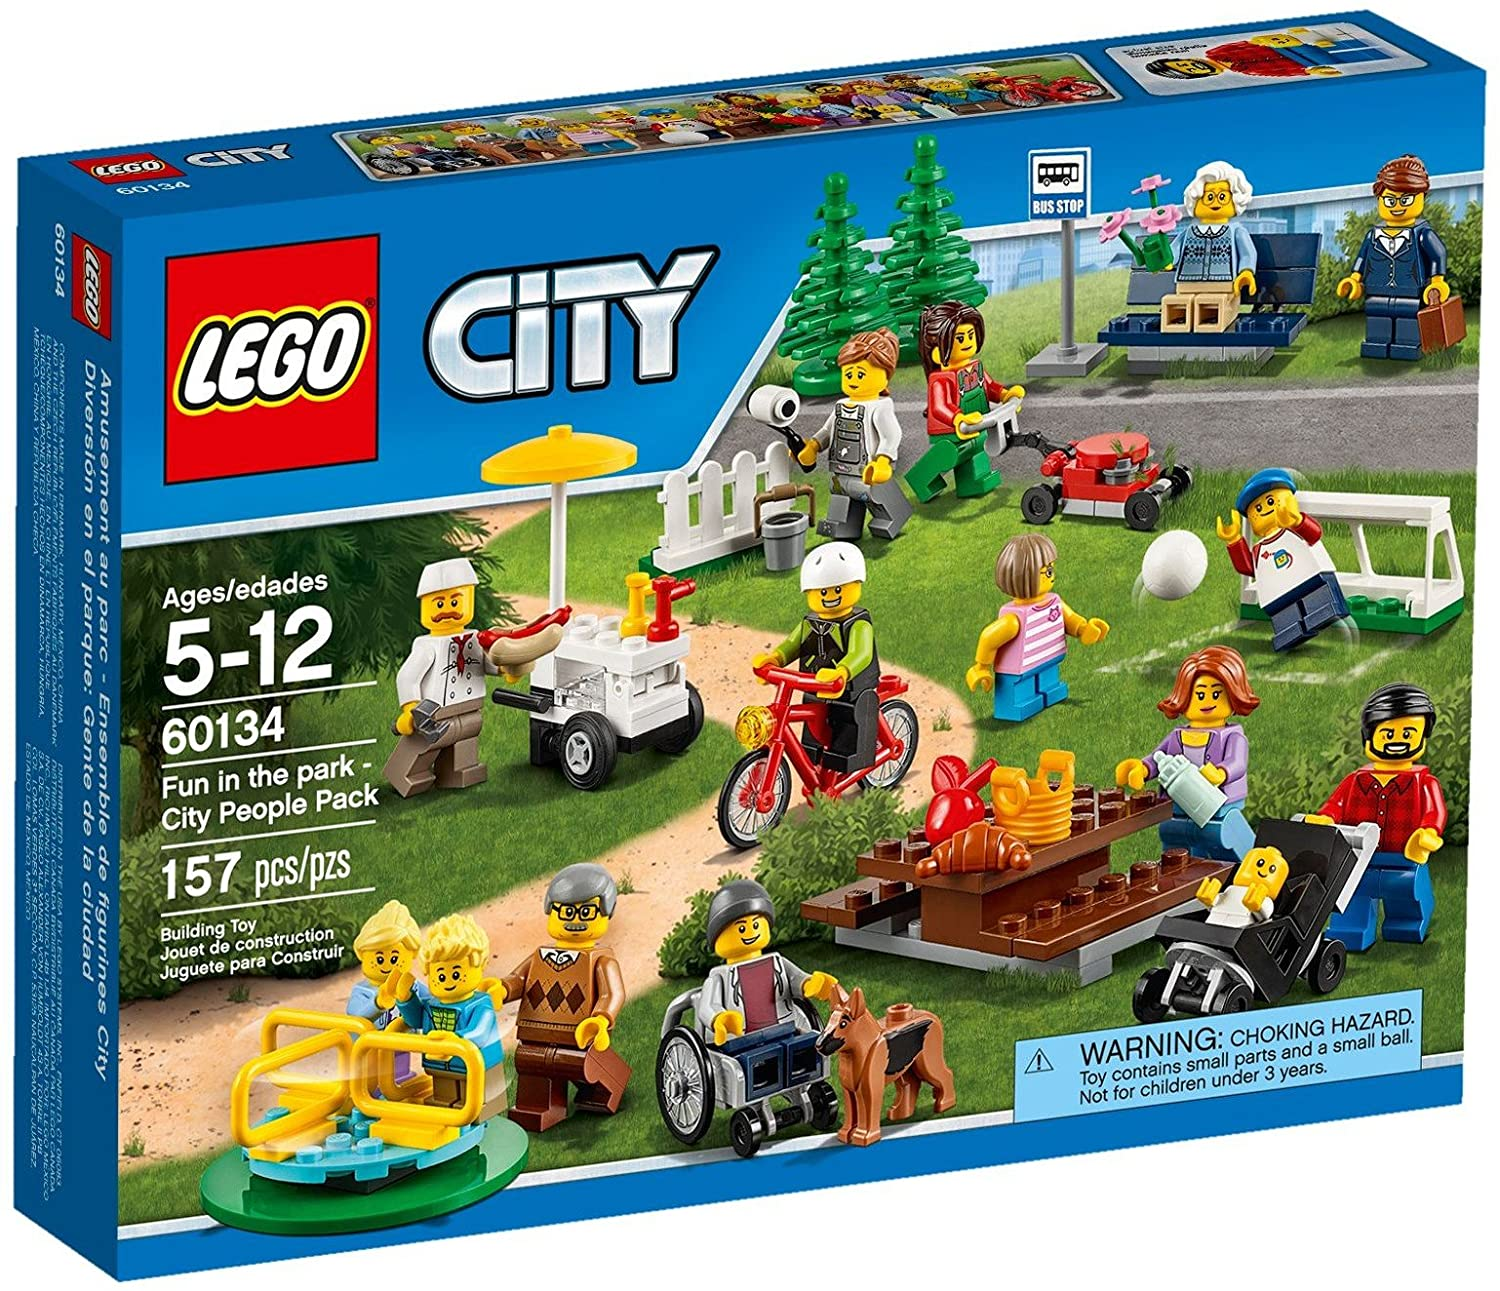 LG CITY - FUN IN THE PATK-CITY PARK (60134) - Wild Willy - Toys Lebanon